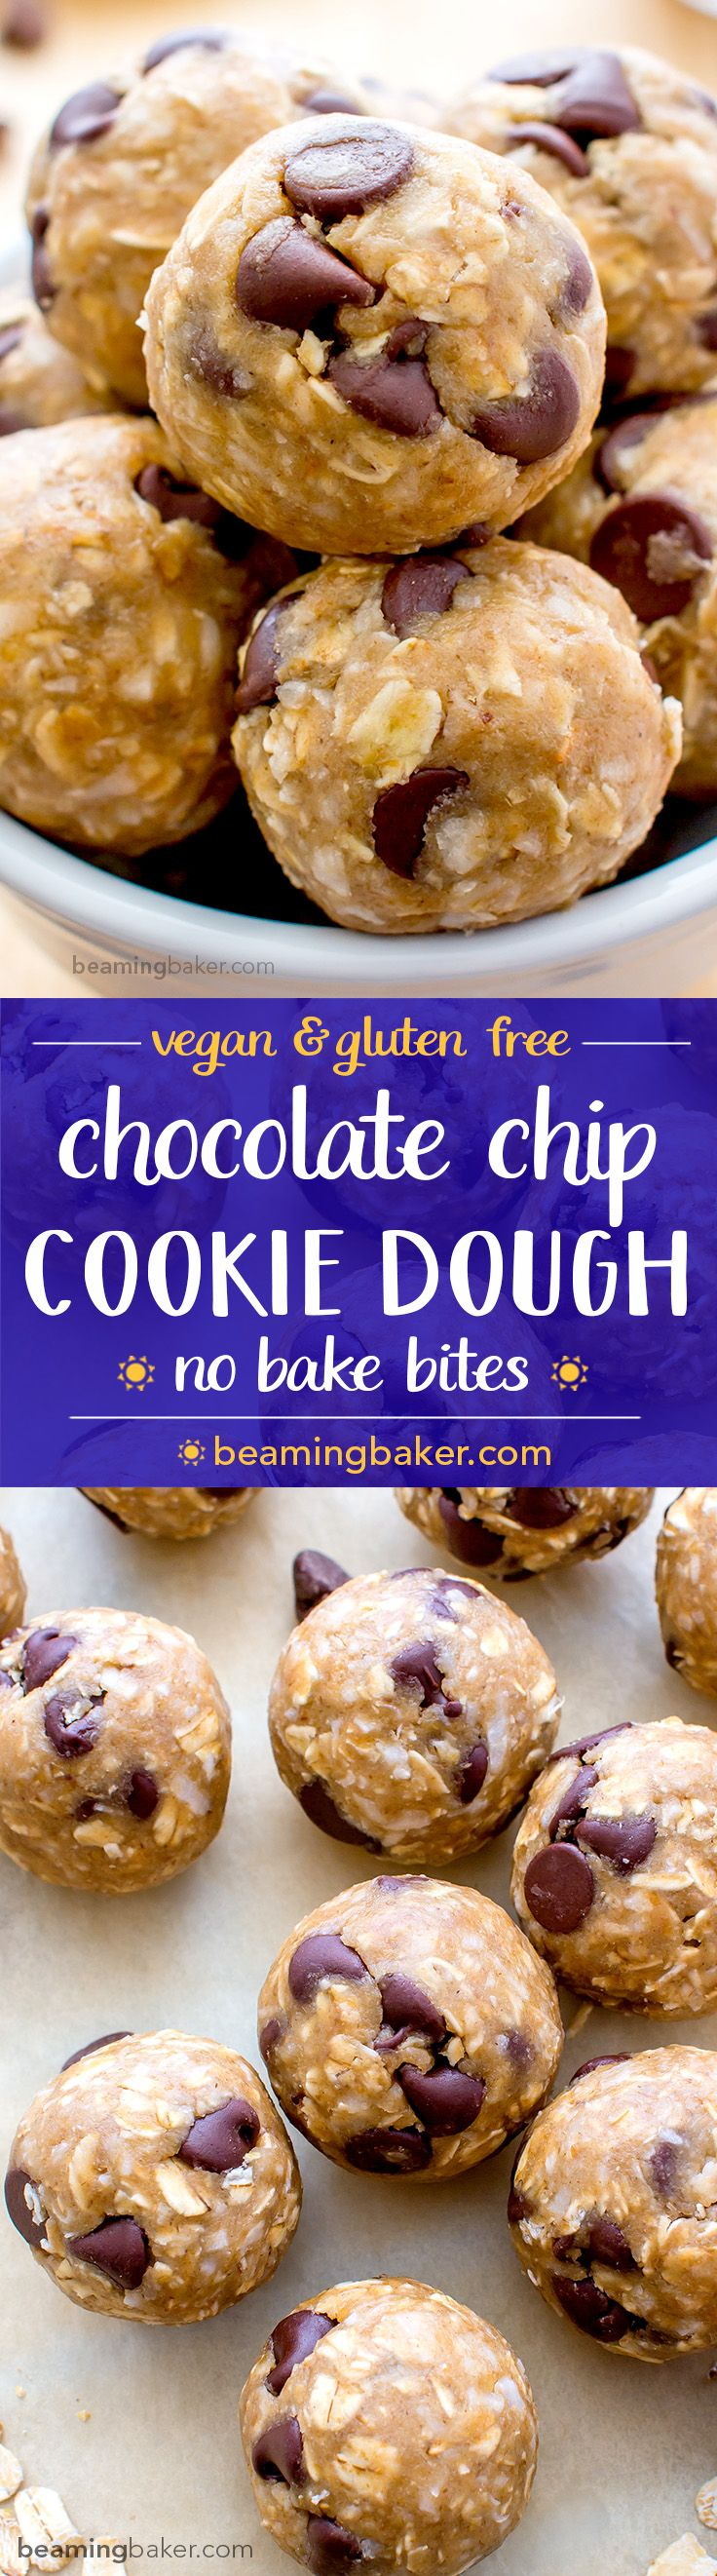 Chocolate Chip Cookie Dough Bites (V+GF): An easy, guilt-free recipe for seriously delicious chocolate chip cookie dough bites. BEAMINGBAKER.COM #Vegan #GlutenFree (Coconut Butter Egg Free)